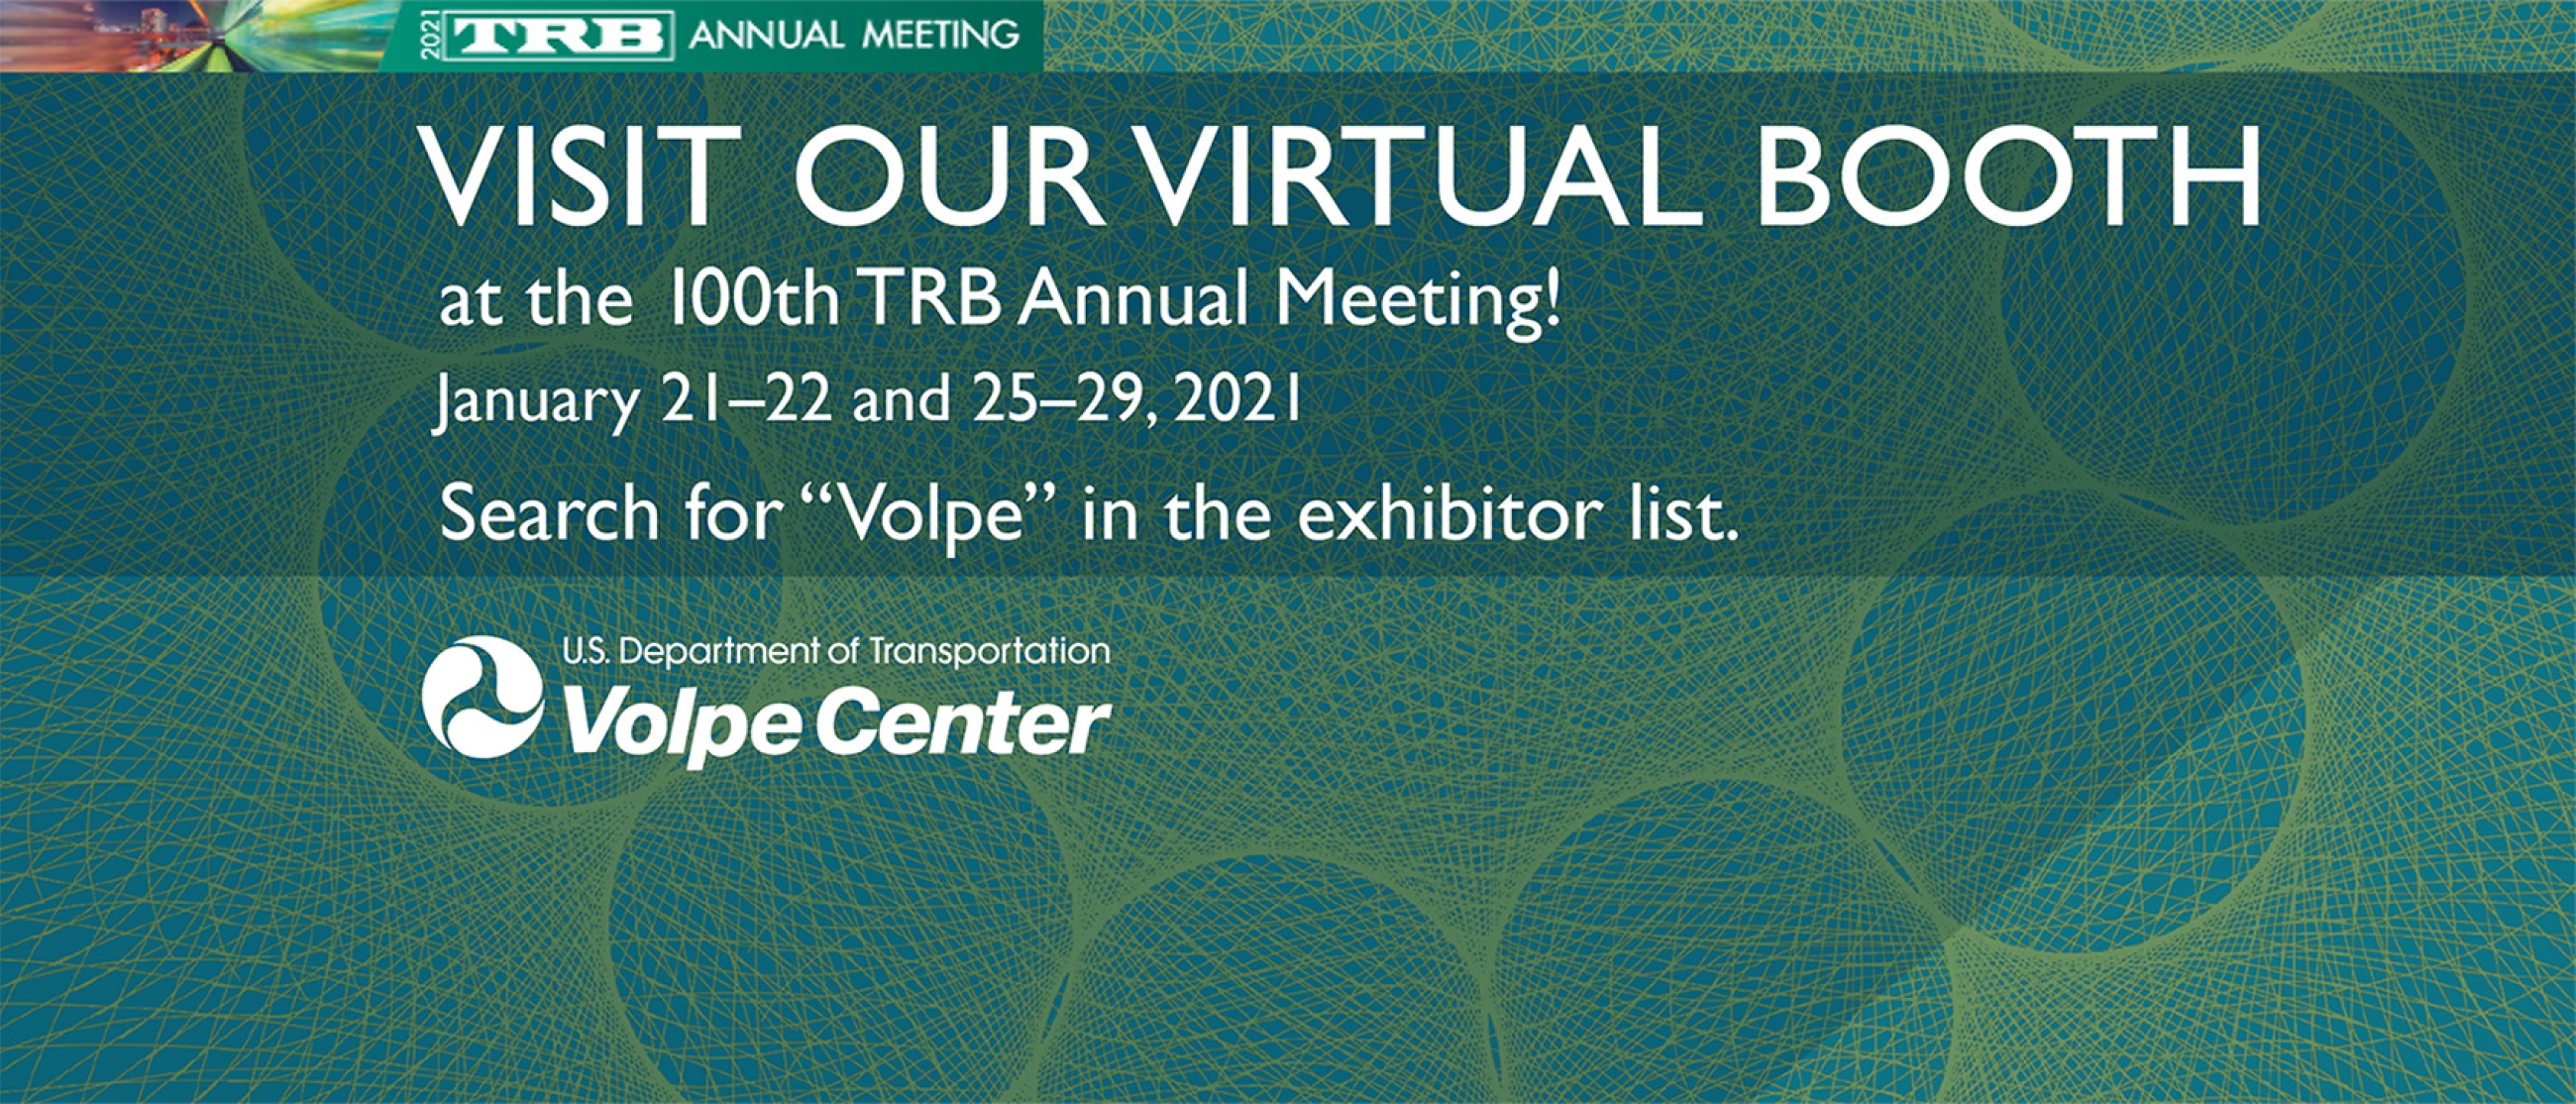 "Visit our virtual booth at the 100th TRB Annual Meeting, Jan. 21-22 and 25-29, 2021. Search for ""Volpe"" in the exhibitor list."